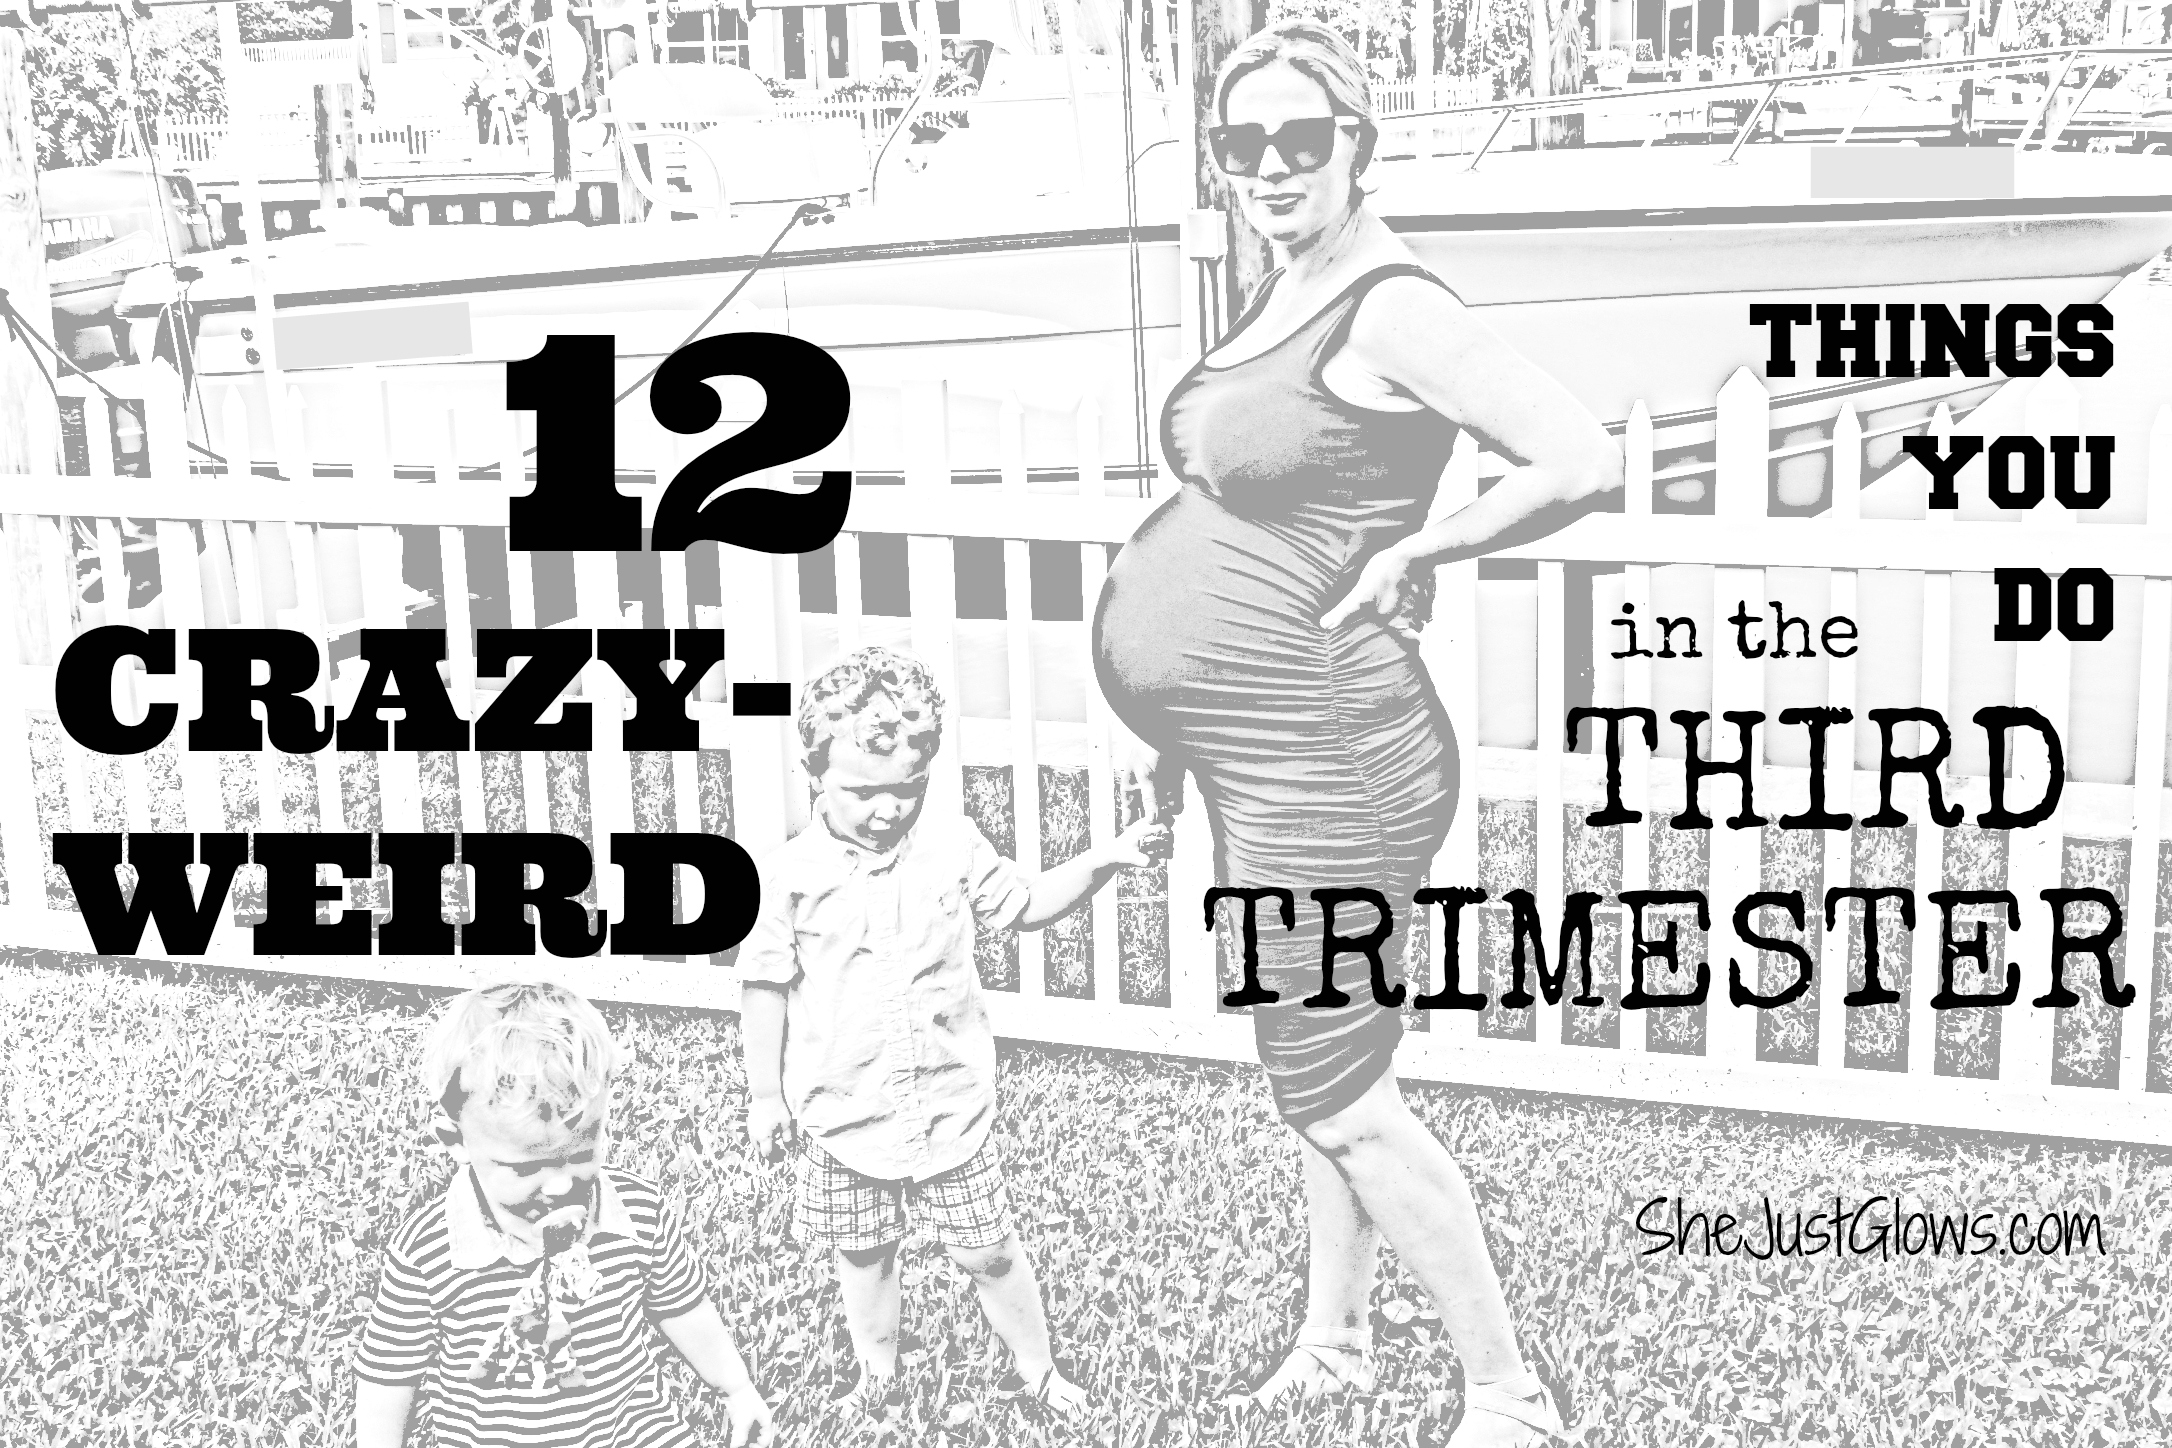 12 Crazy-Weird Things You Do In Your Third Trimester SheJustGlows.com